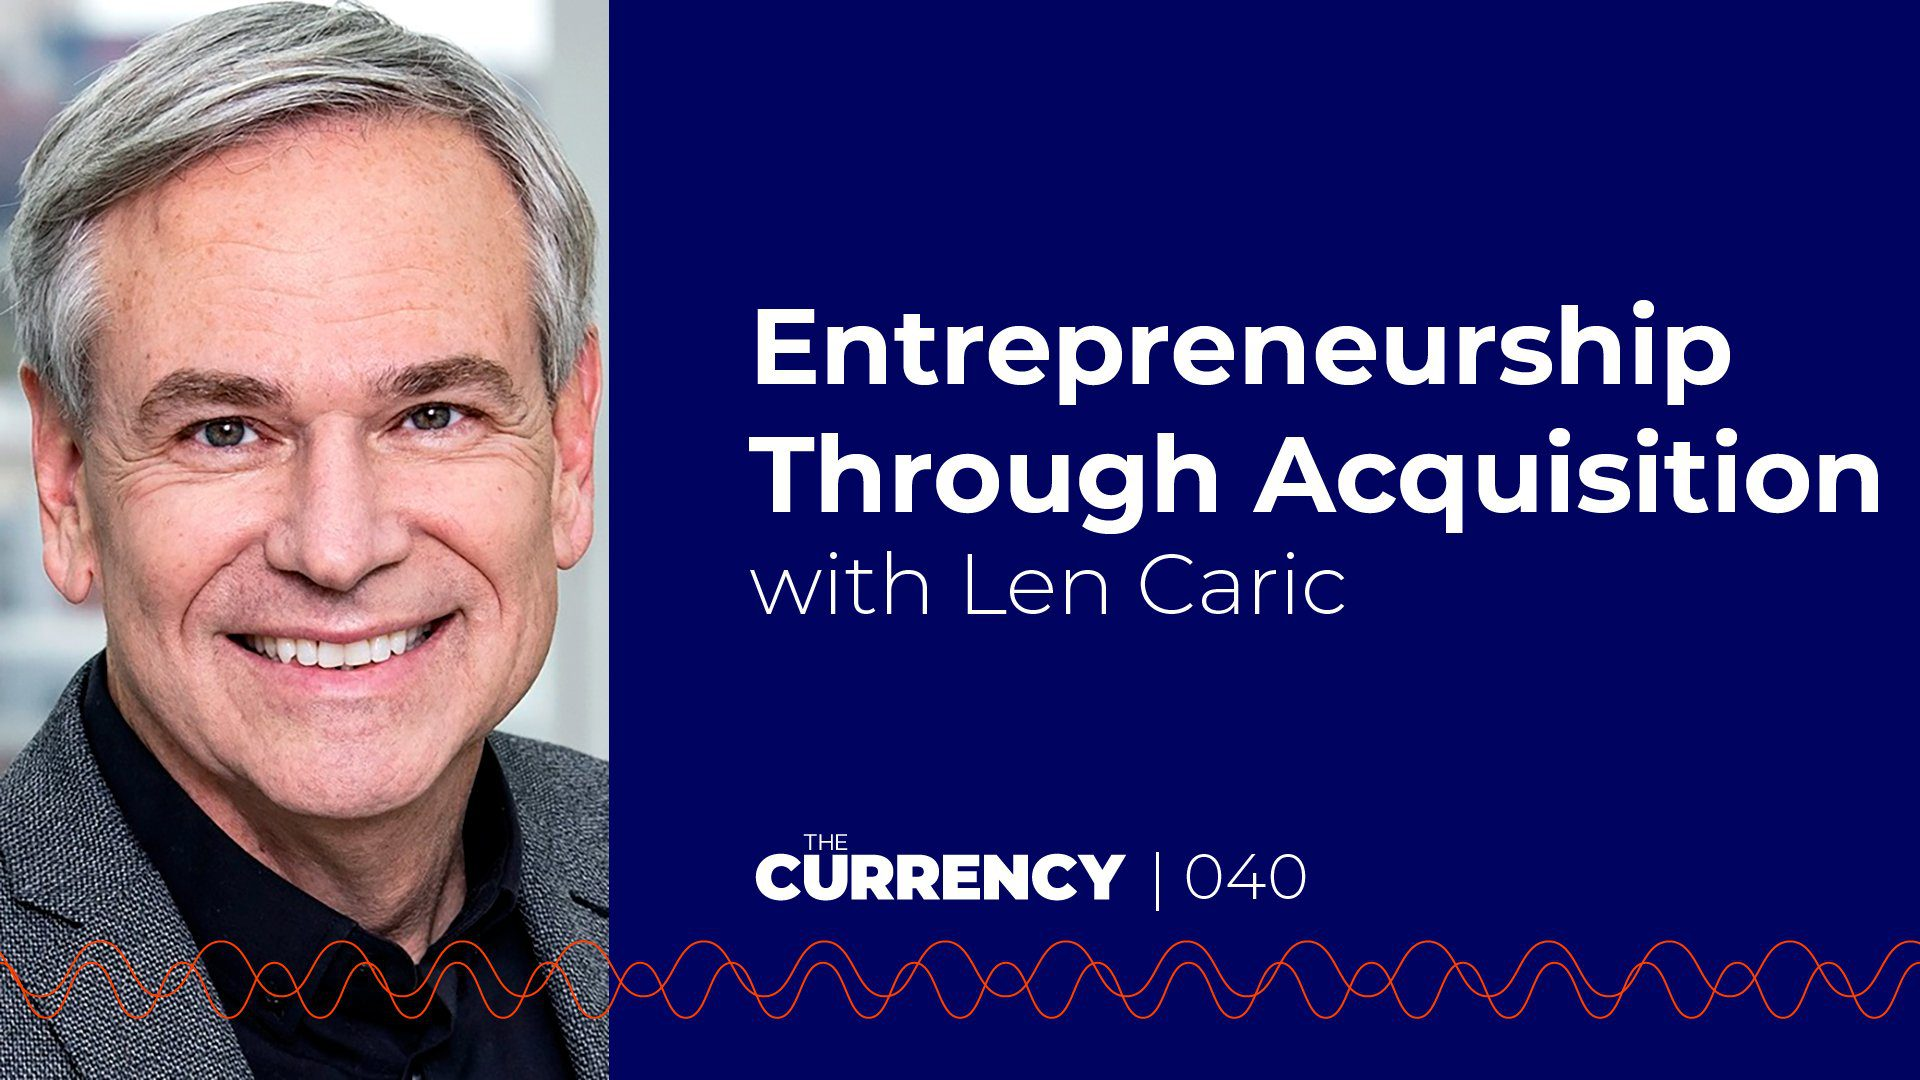 The Currency: [040] Entrepreneurship Through Acquisition with Len Caric